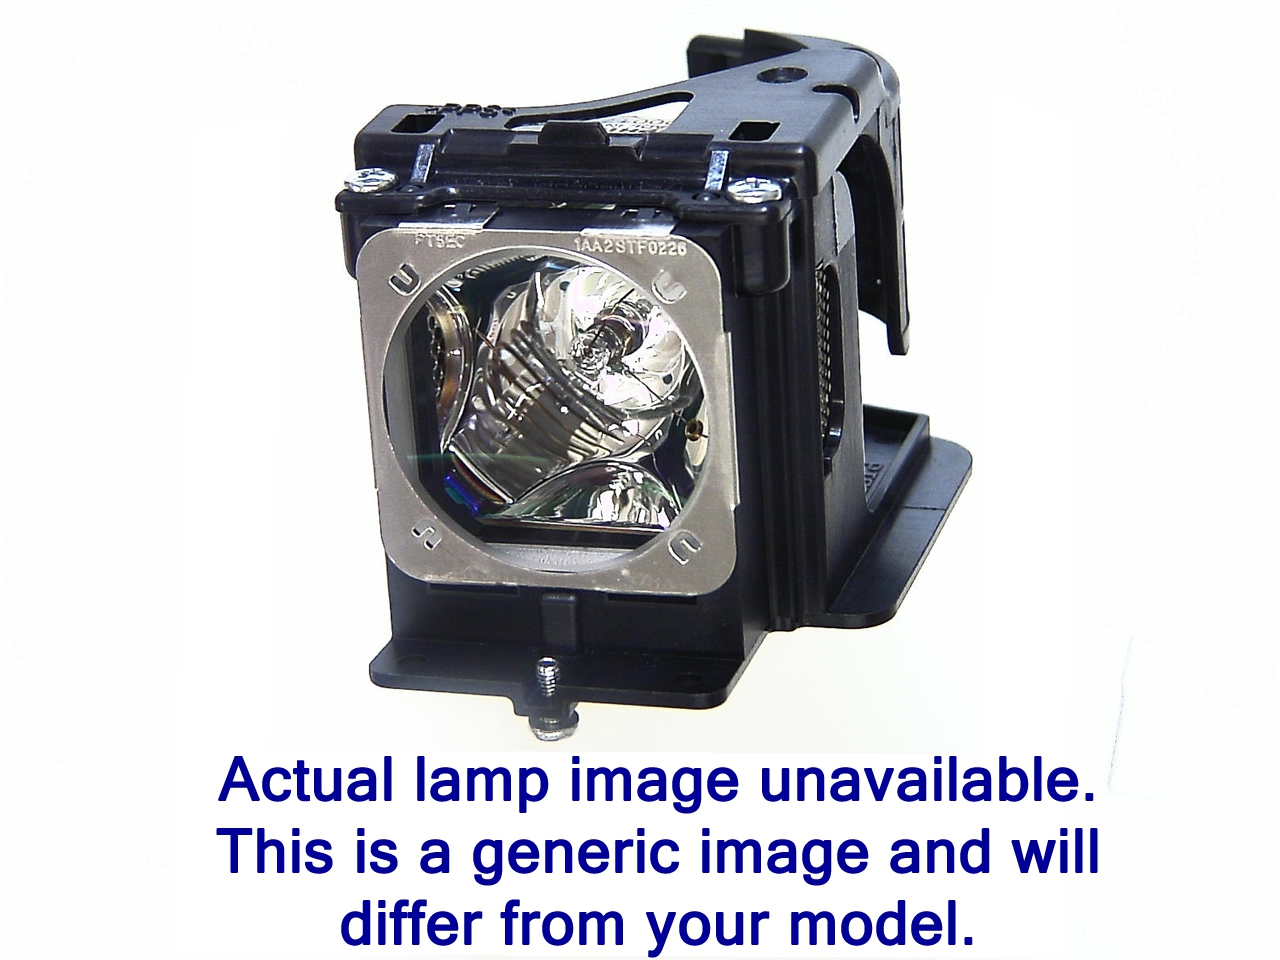 Diamond Lamp for Serial Numbers 2101 a 2600 inclusive para EIKI LC-SB25 (XB2501 Lamp) Proyector